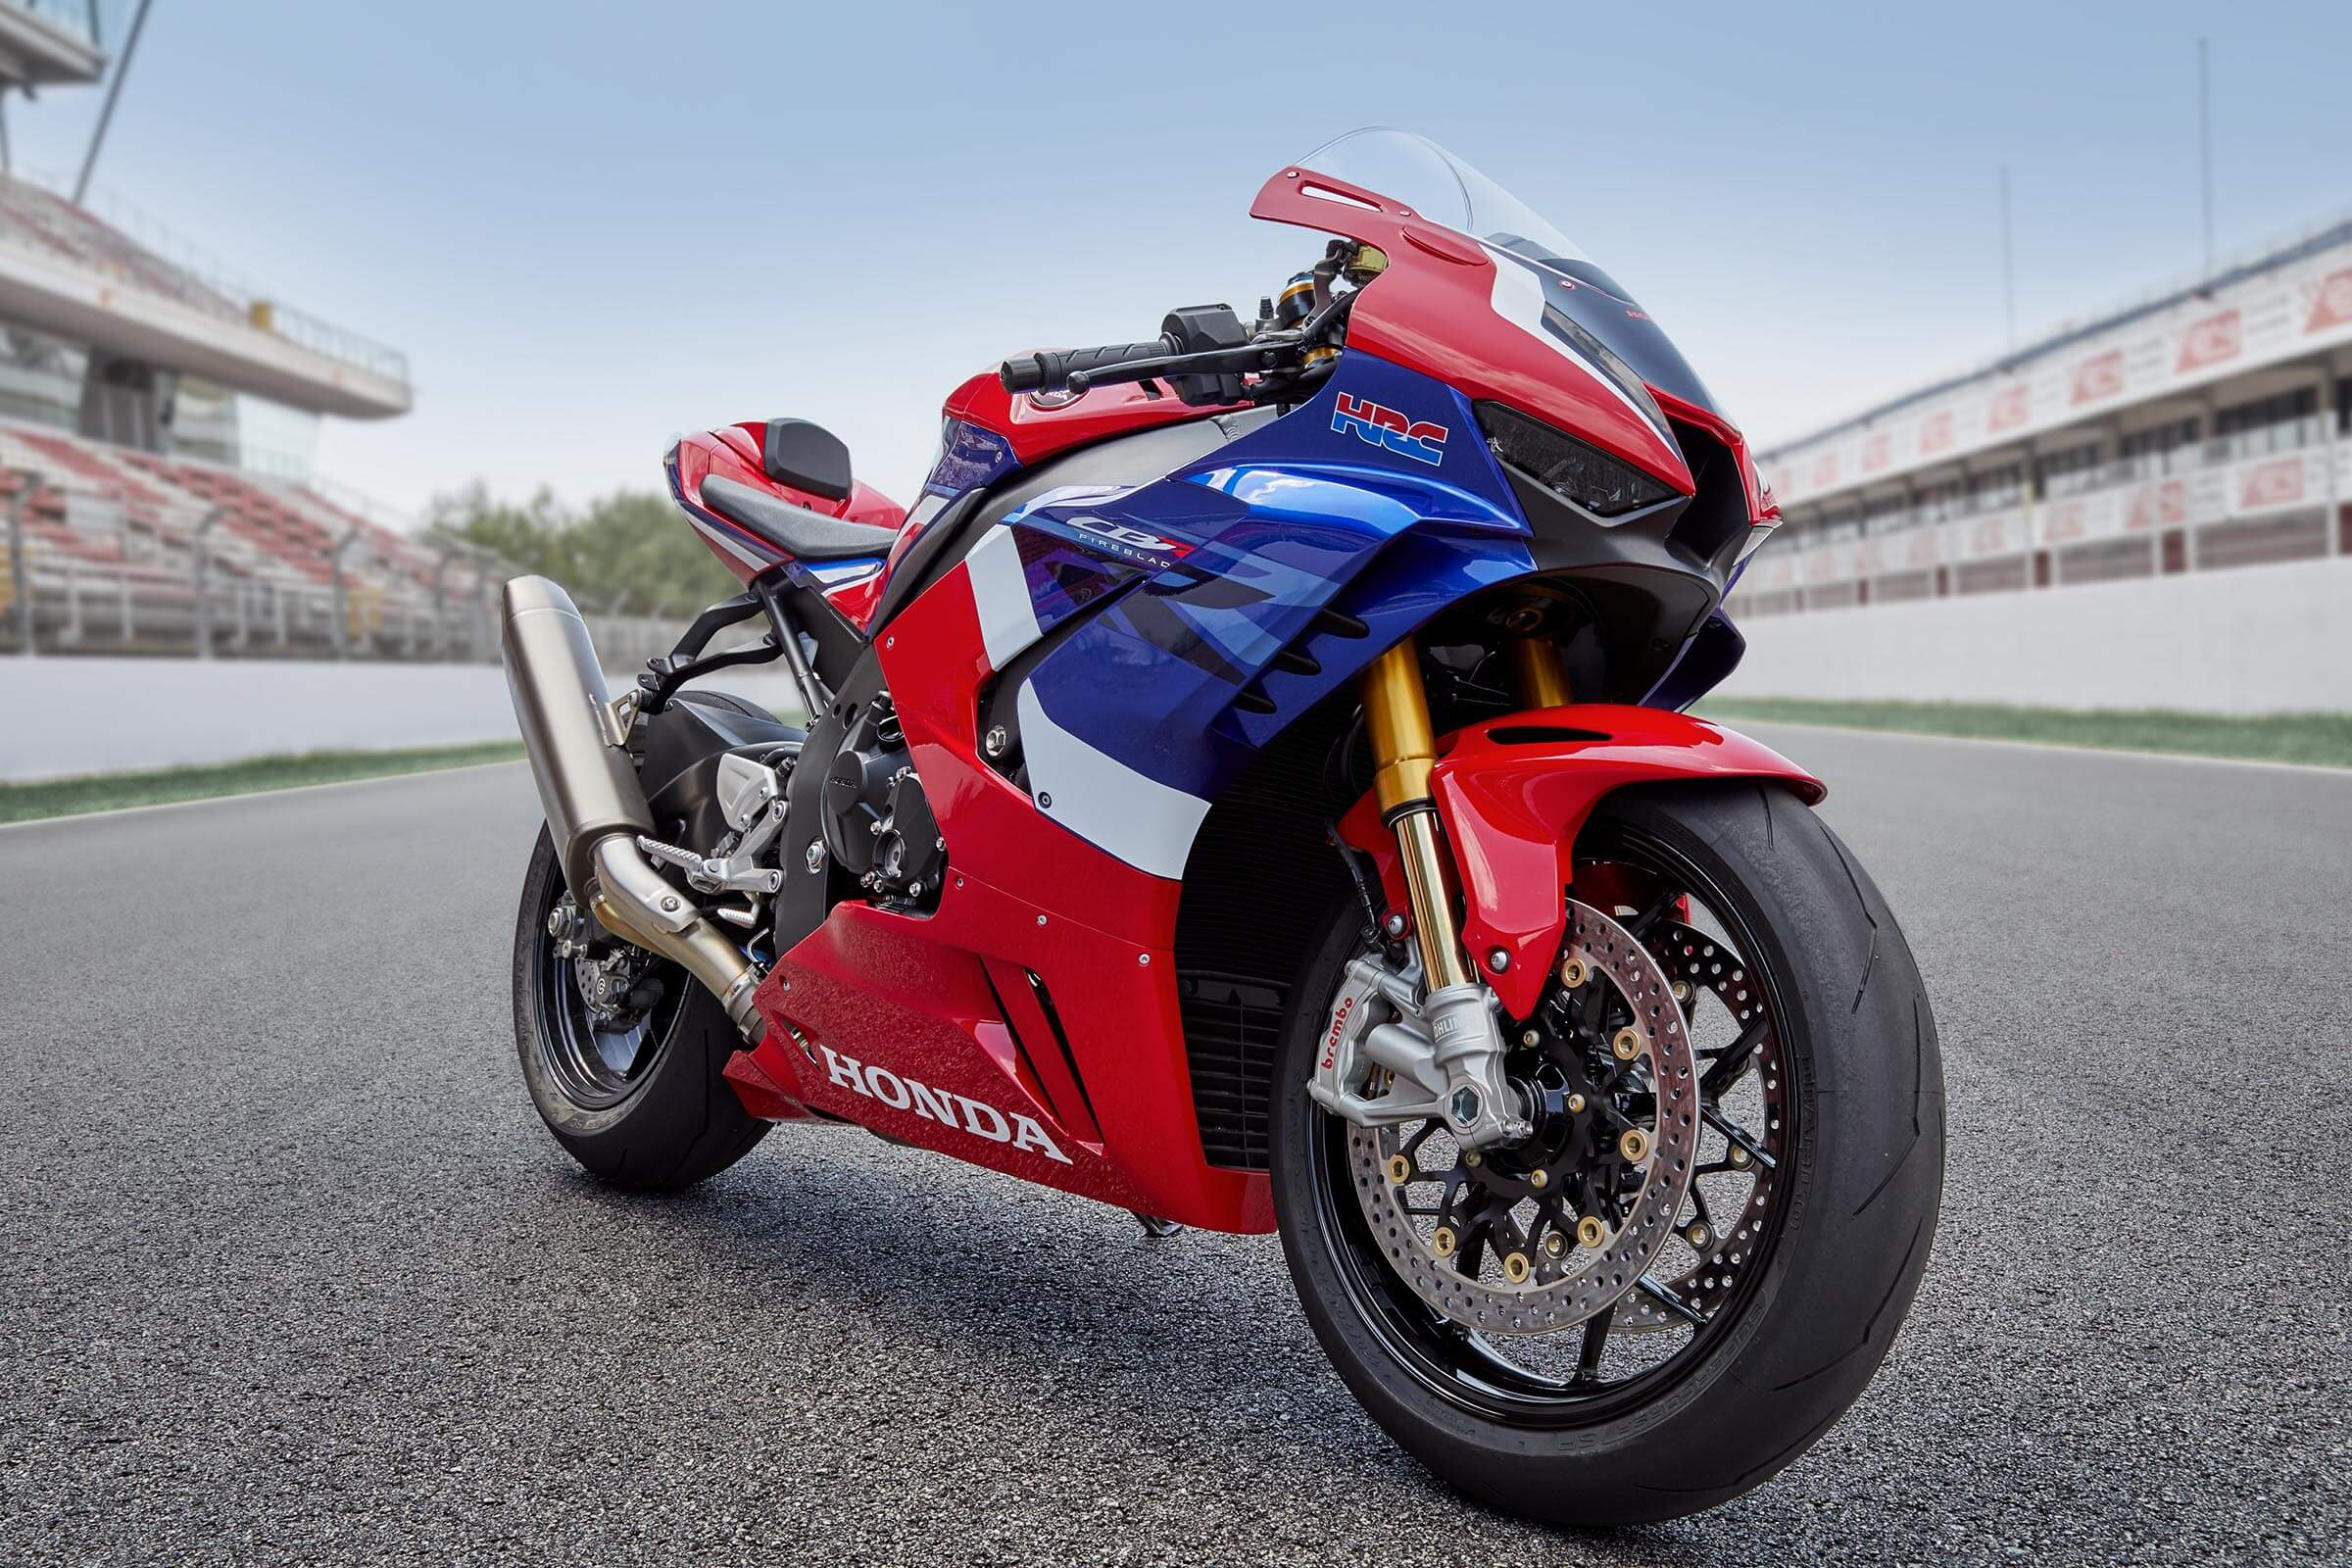 New Honda CBR1000RR Fireblade coming with VTEC?